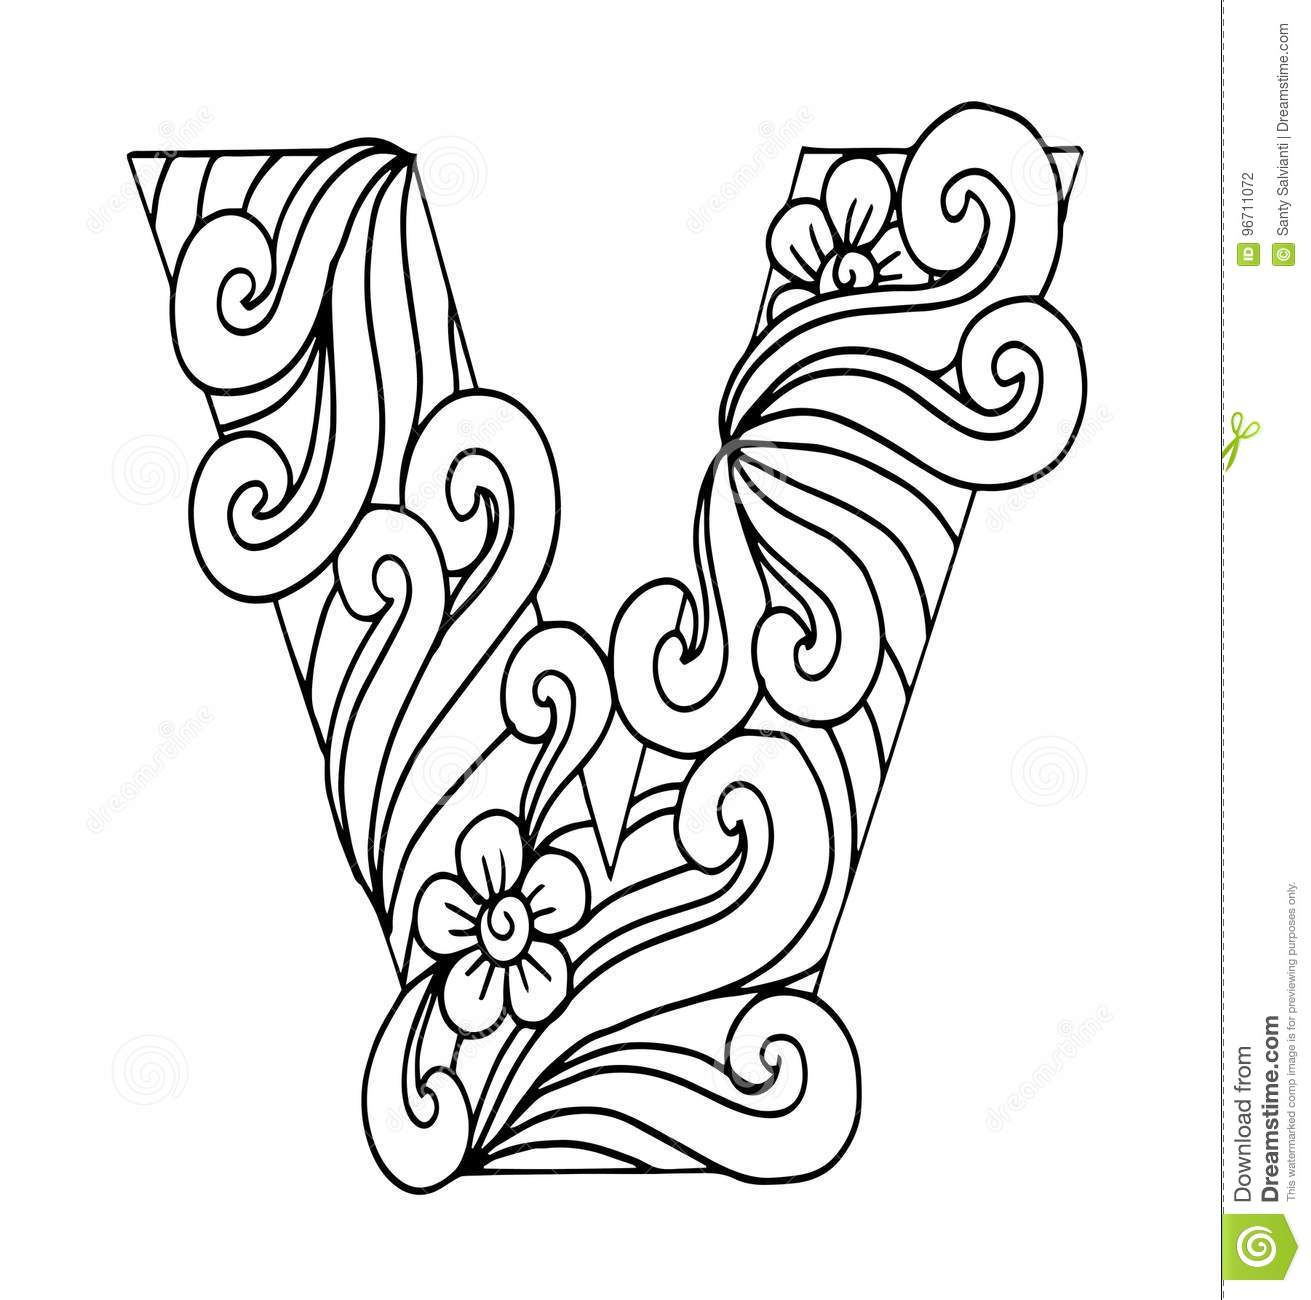 Zentangle Stylized Alphabet Letter V In Doodle Style Hand Drawn